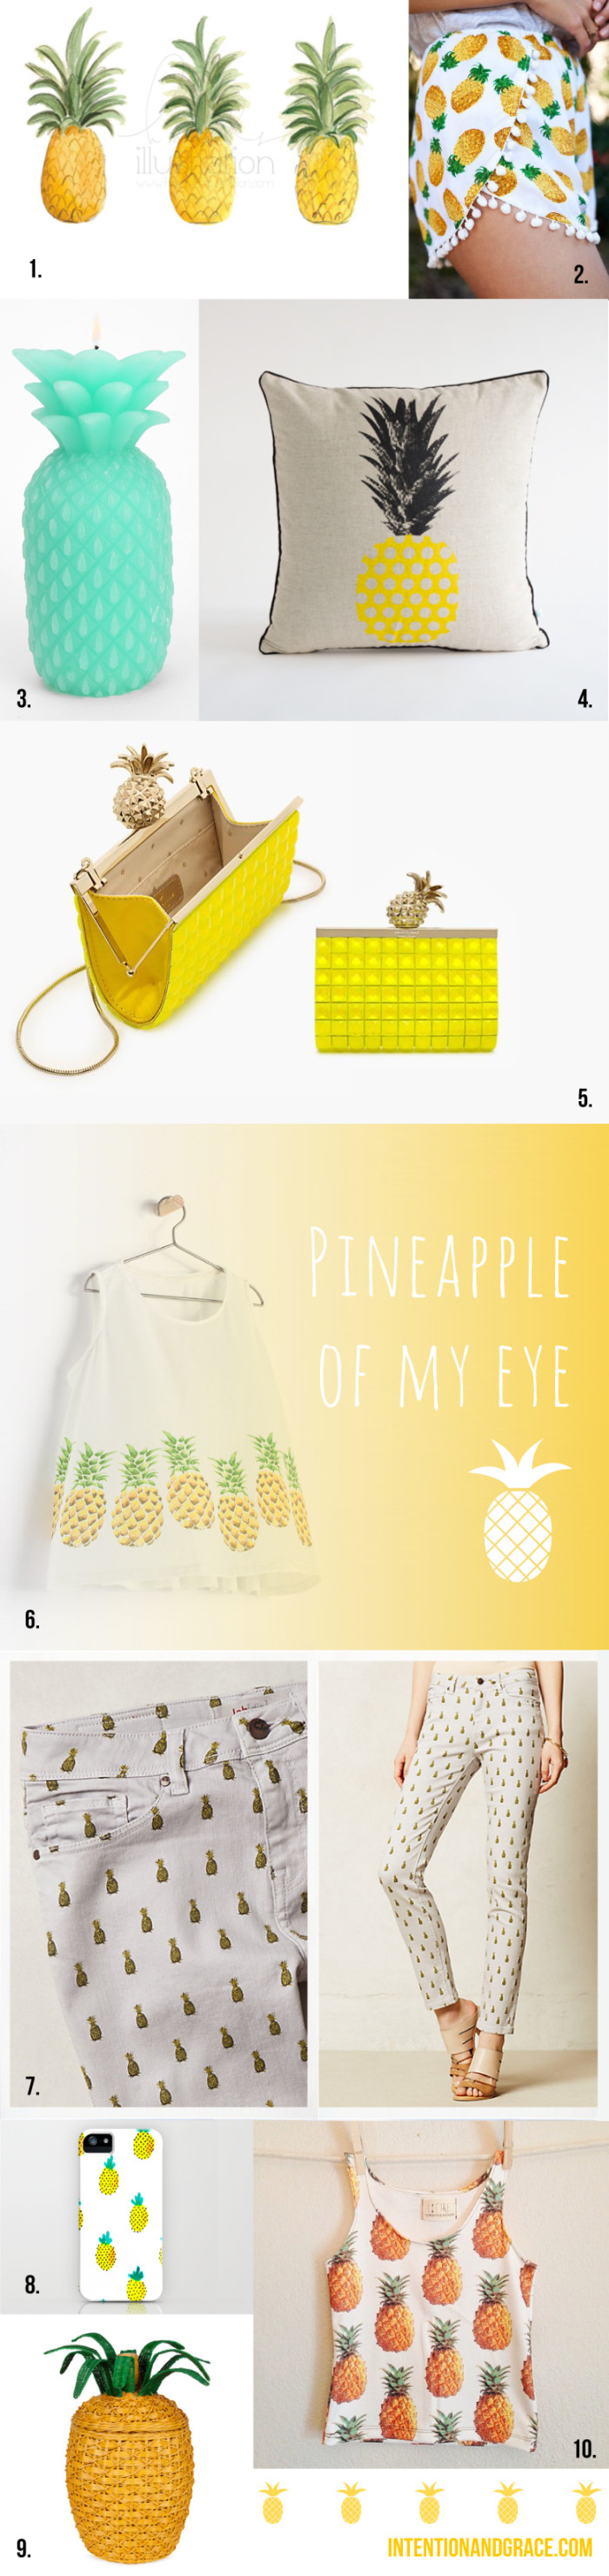 Trending: Pineapple and other fruit prints for summer  |  intentionandgrace.com